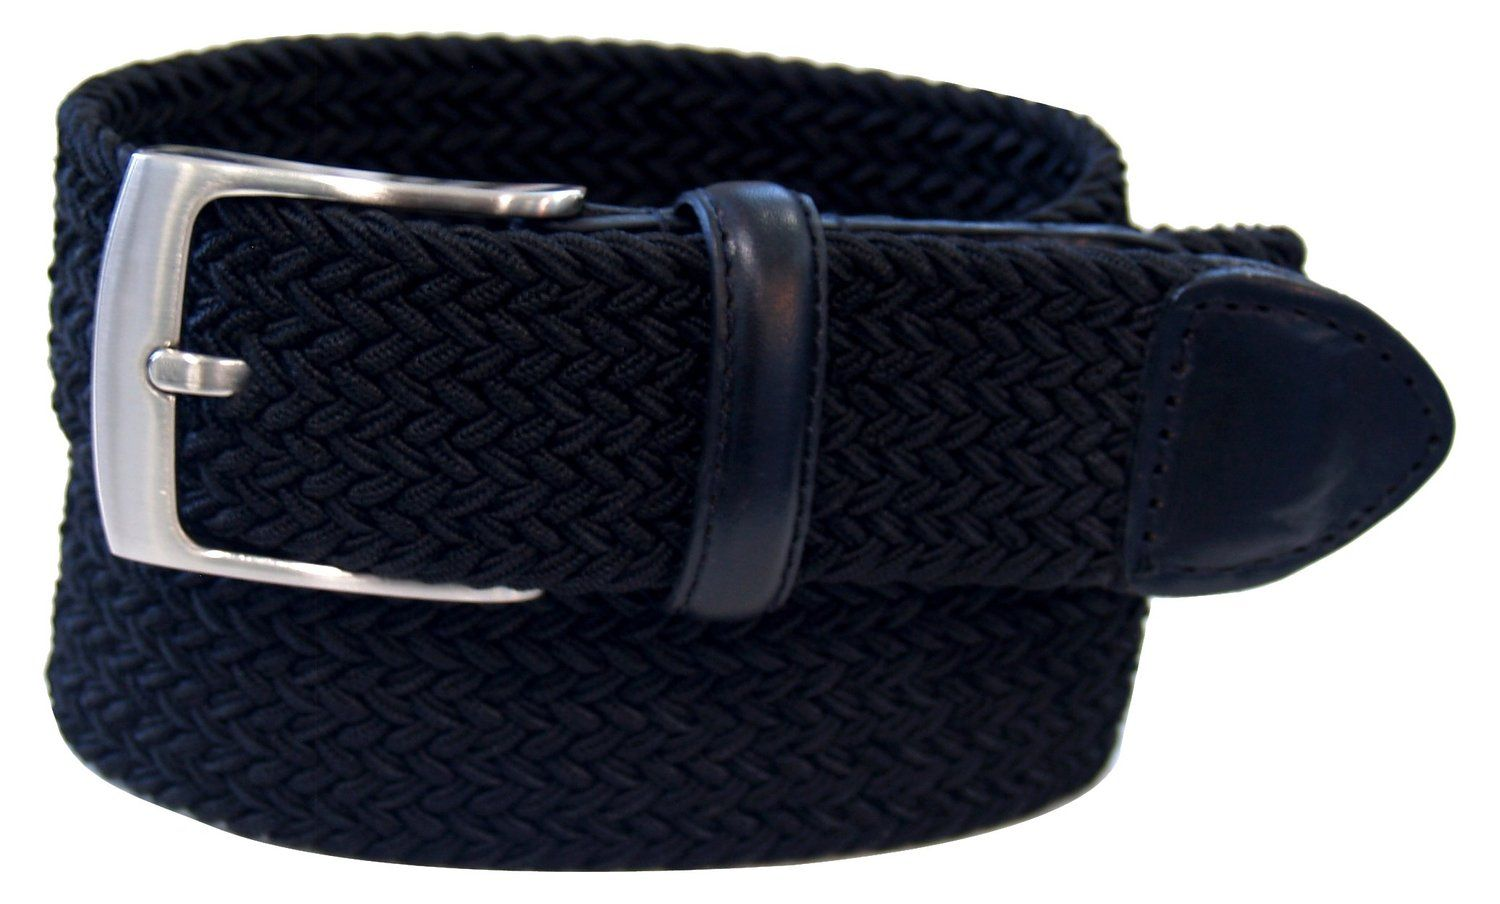 Dockers Men S Stretch Woven Canvas Belt Black 32 At